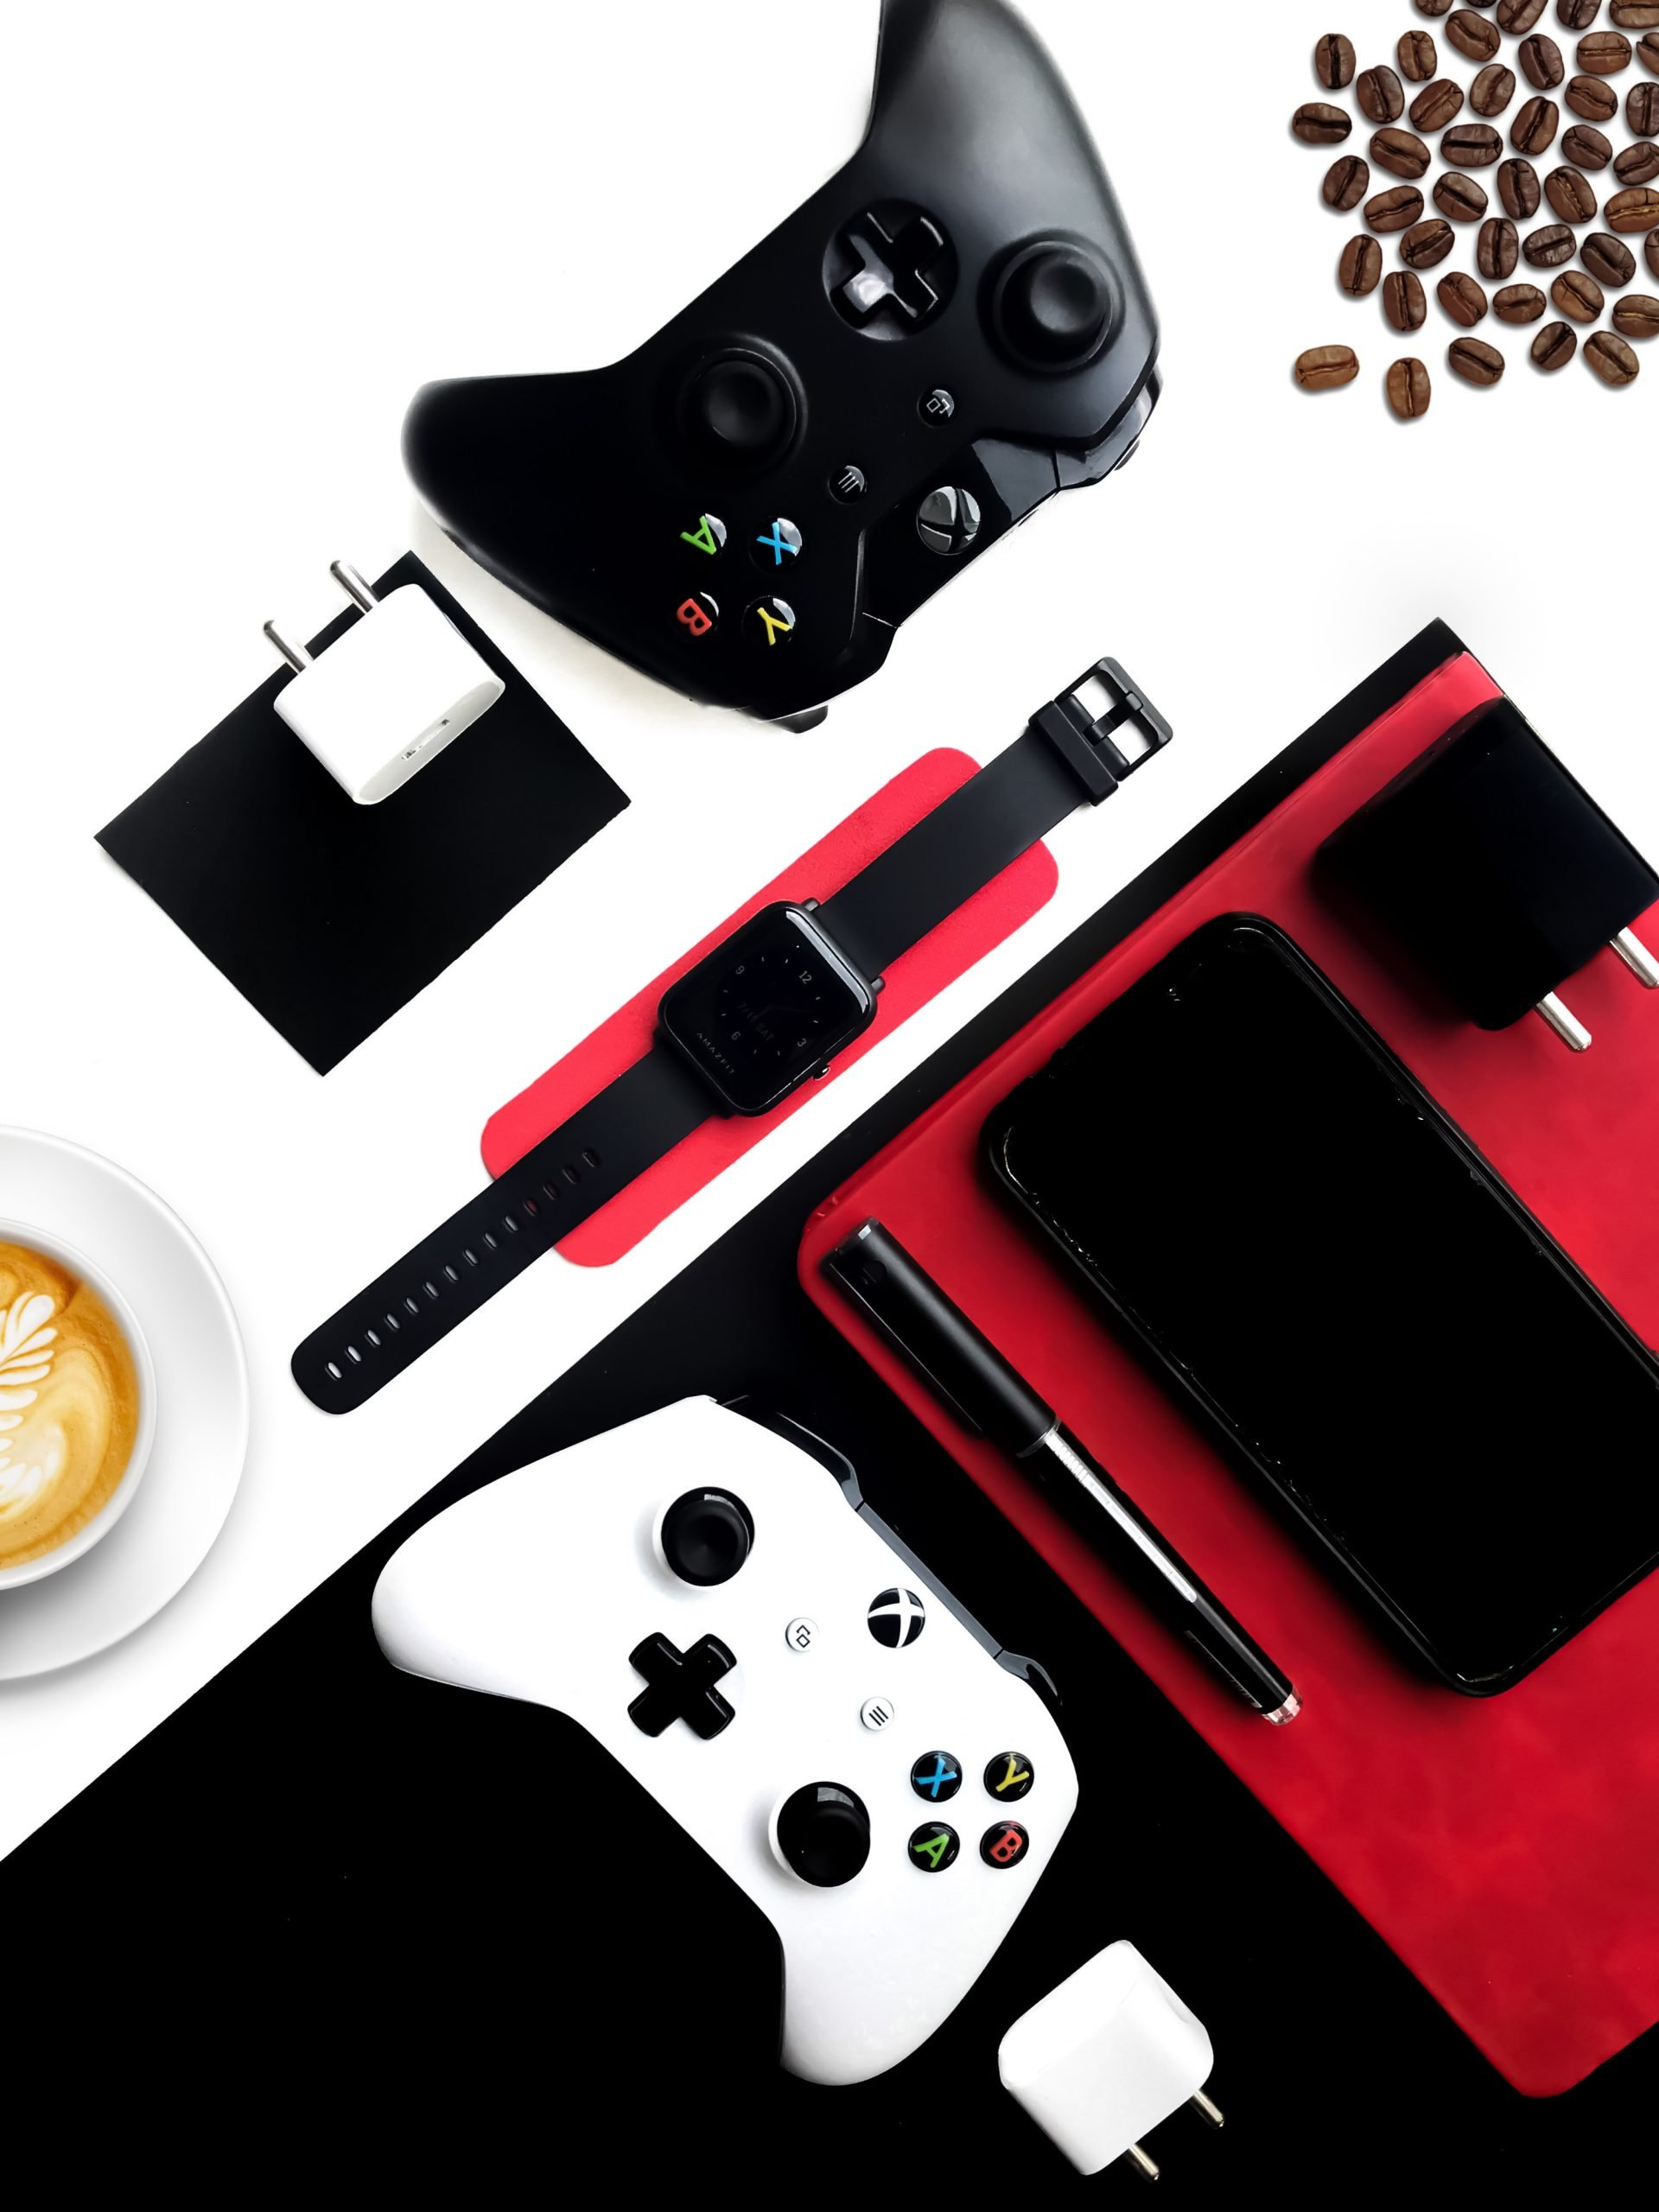 A flatlay of different gadgets